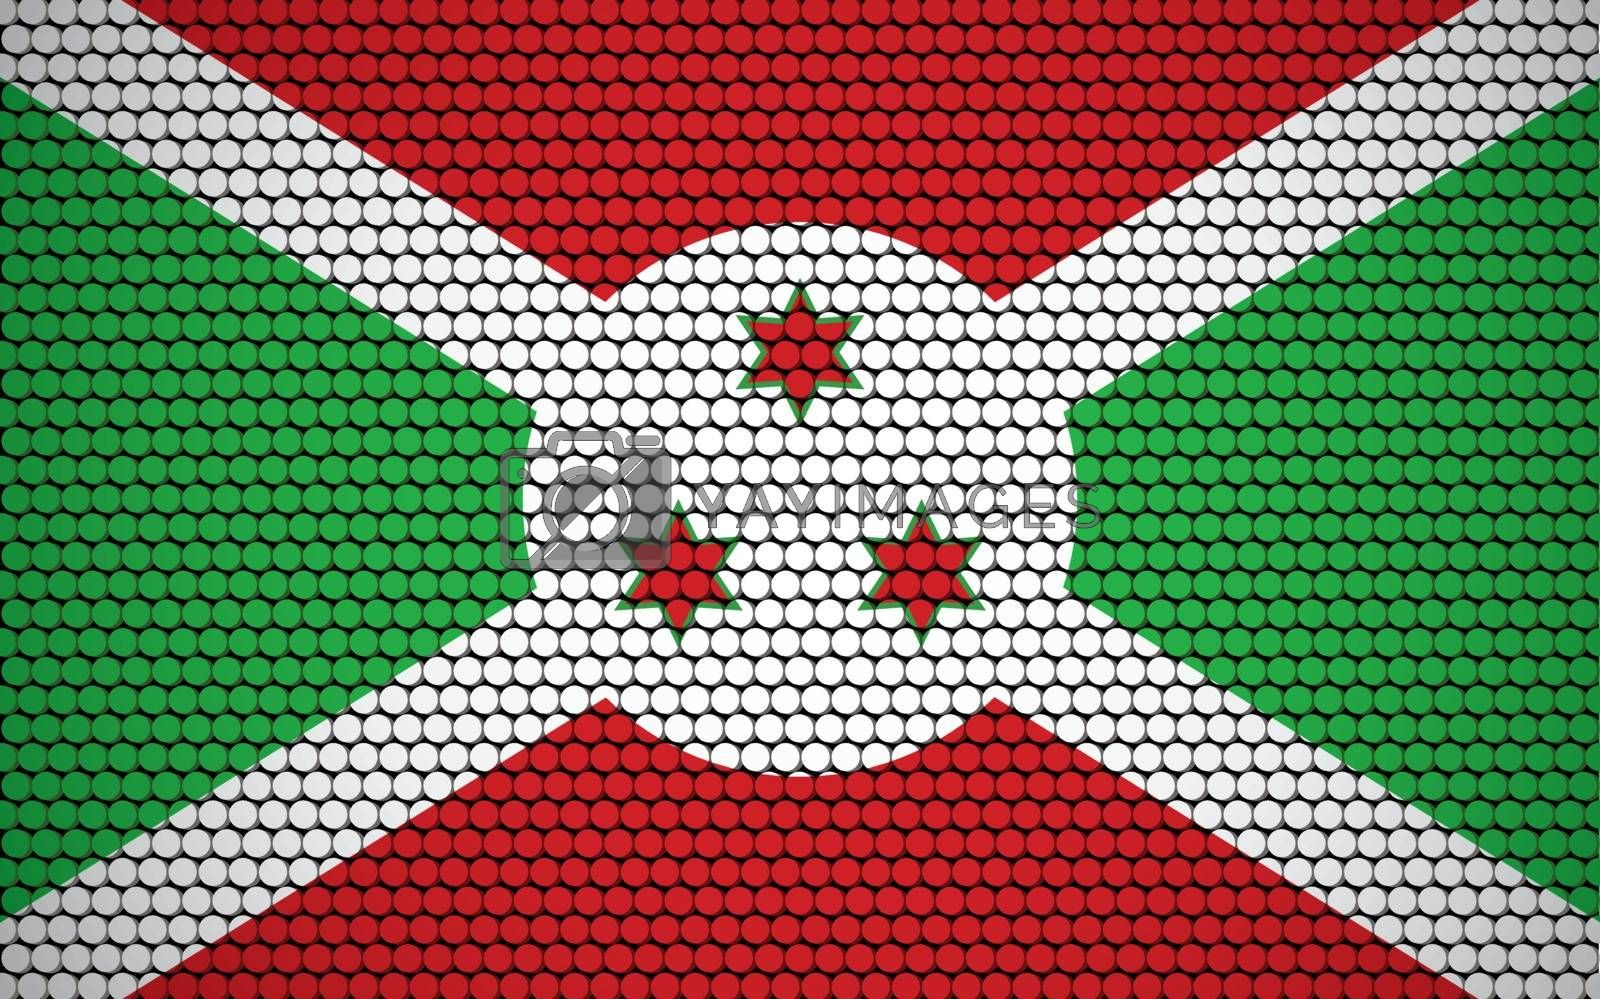 Abstract flag of Burundi made of circles. Burundian flag designed with colored dots giving it a modern and futuristic abstract look.